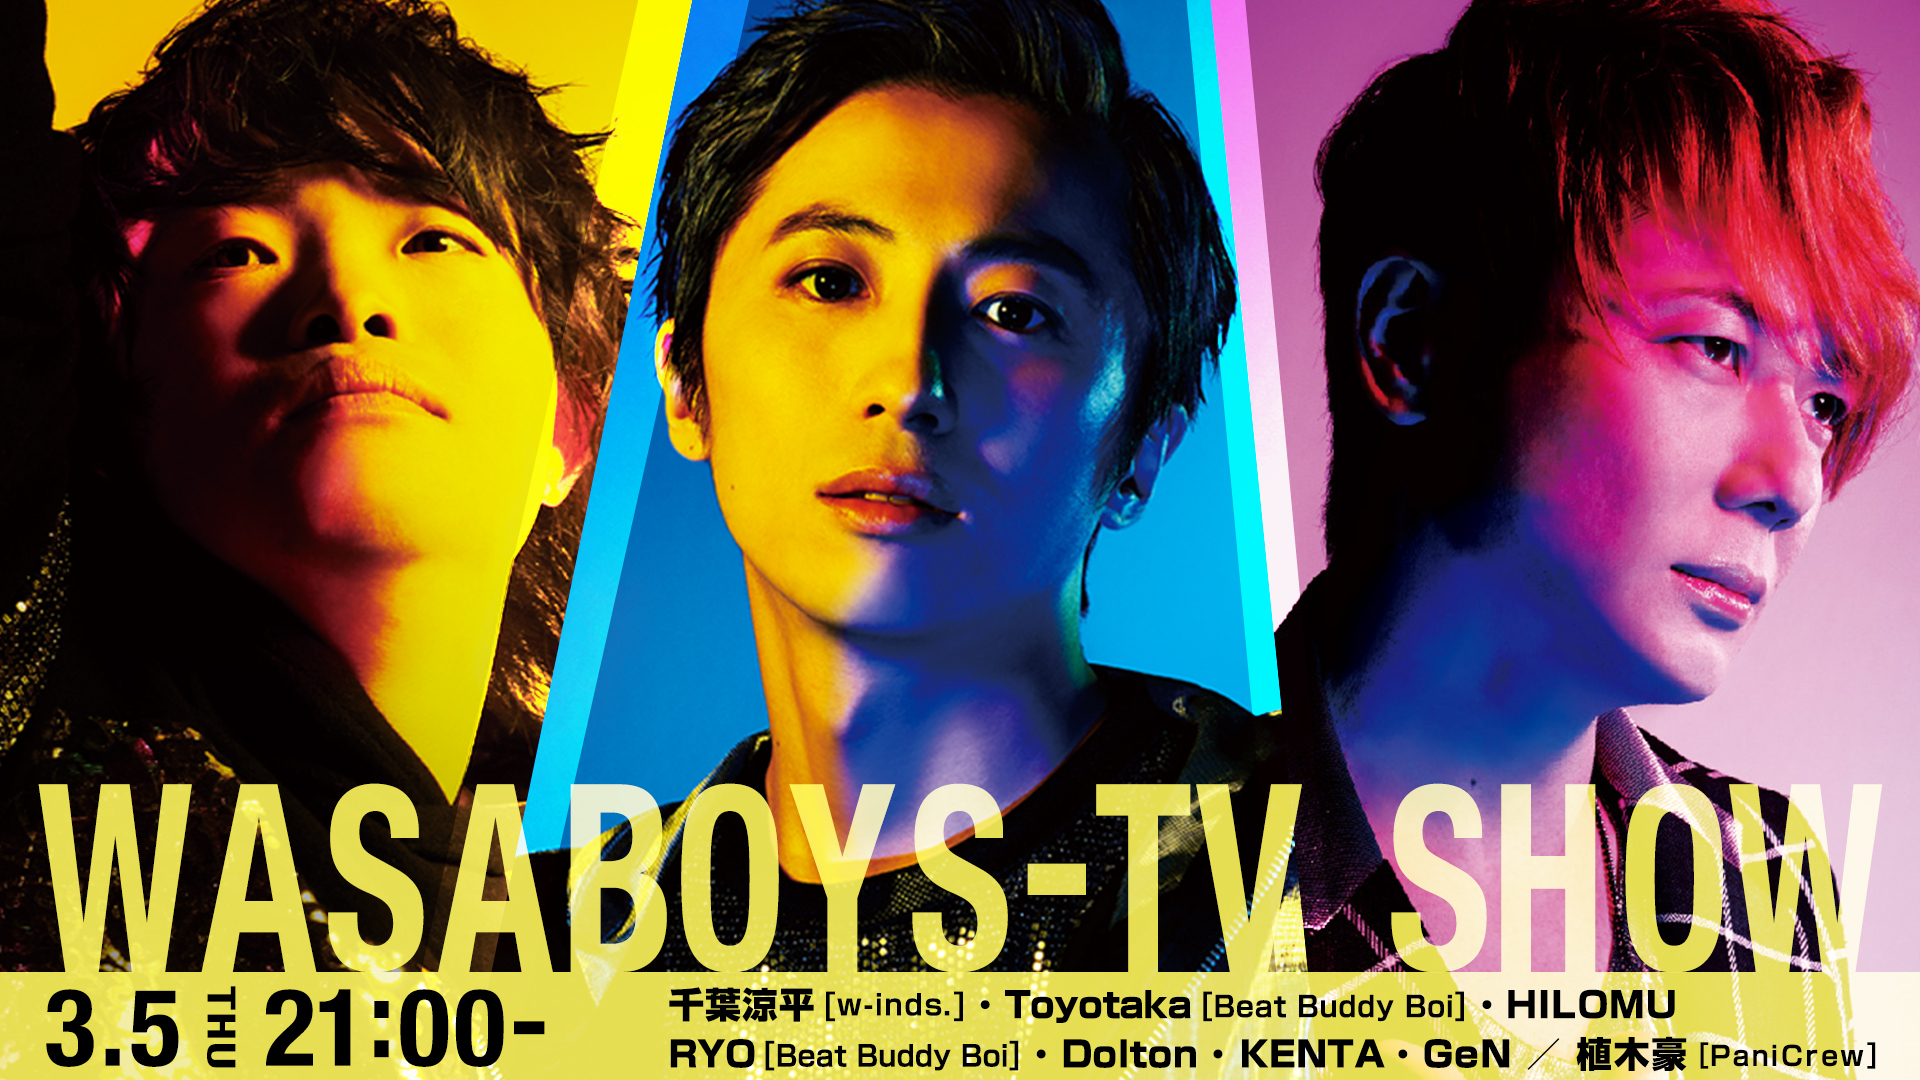 WASABOYS-TV SHOW